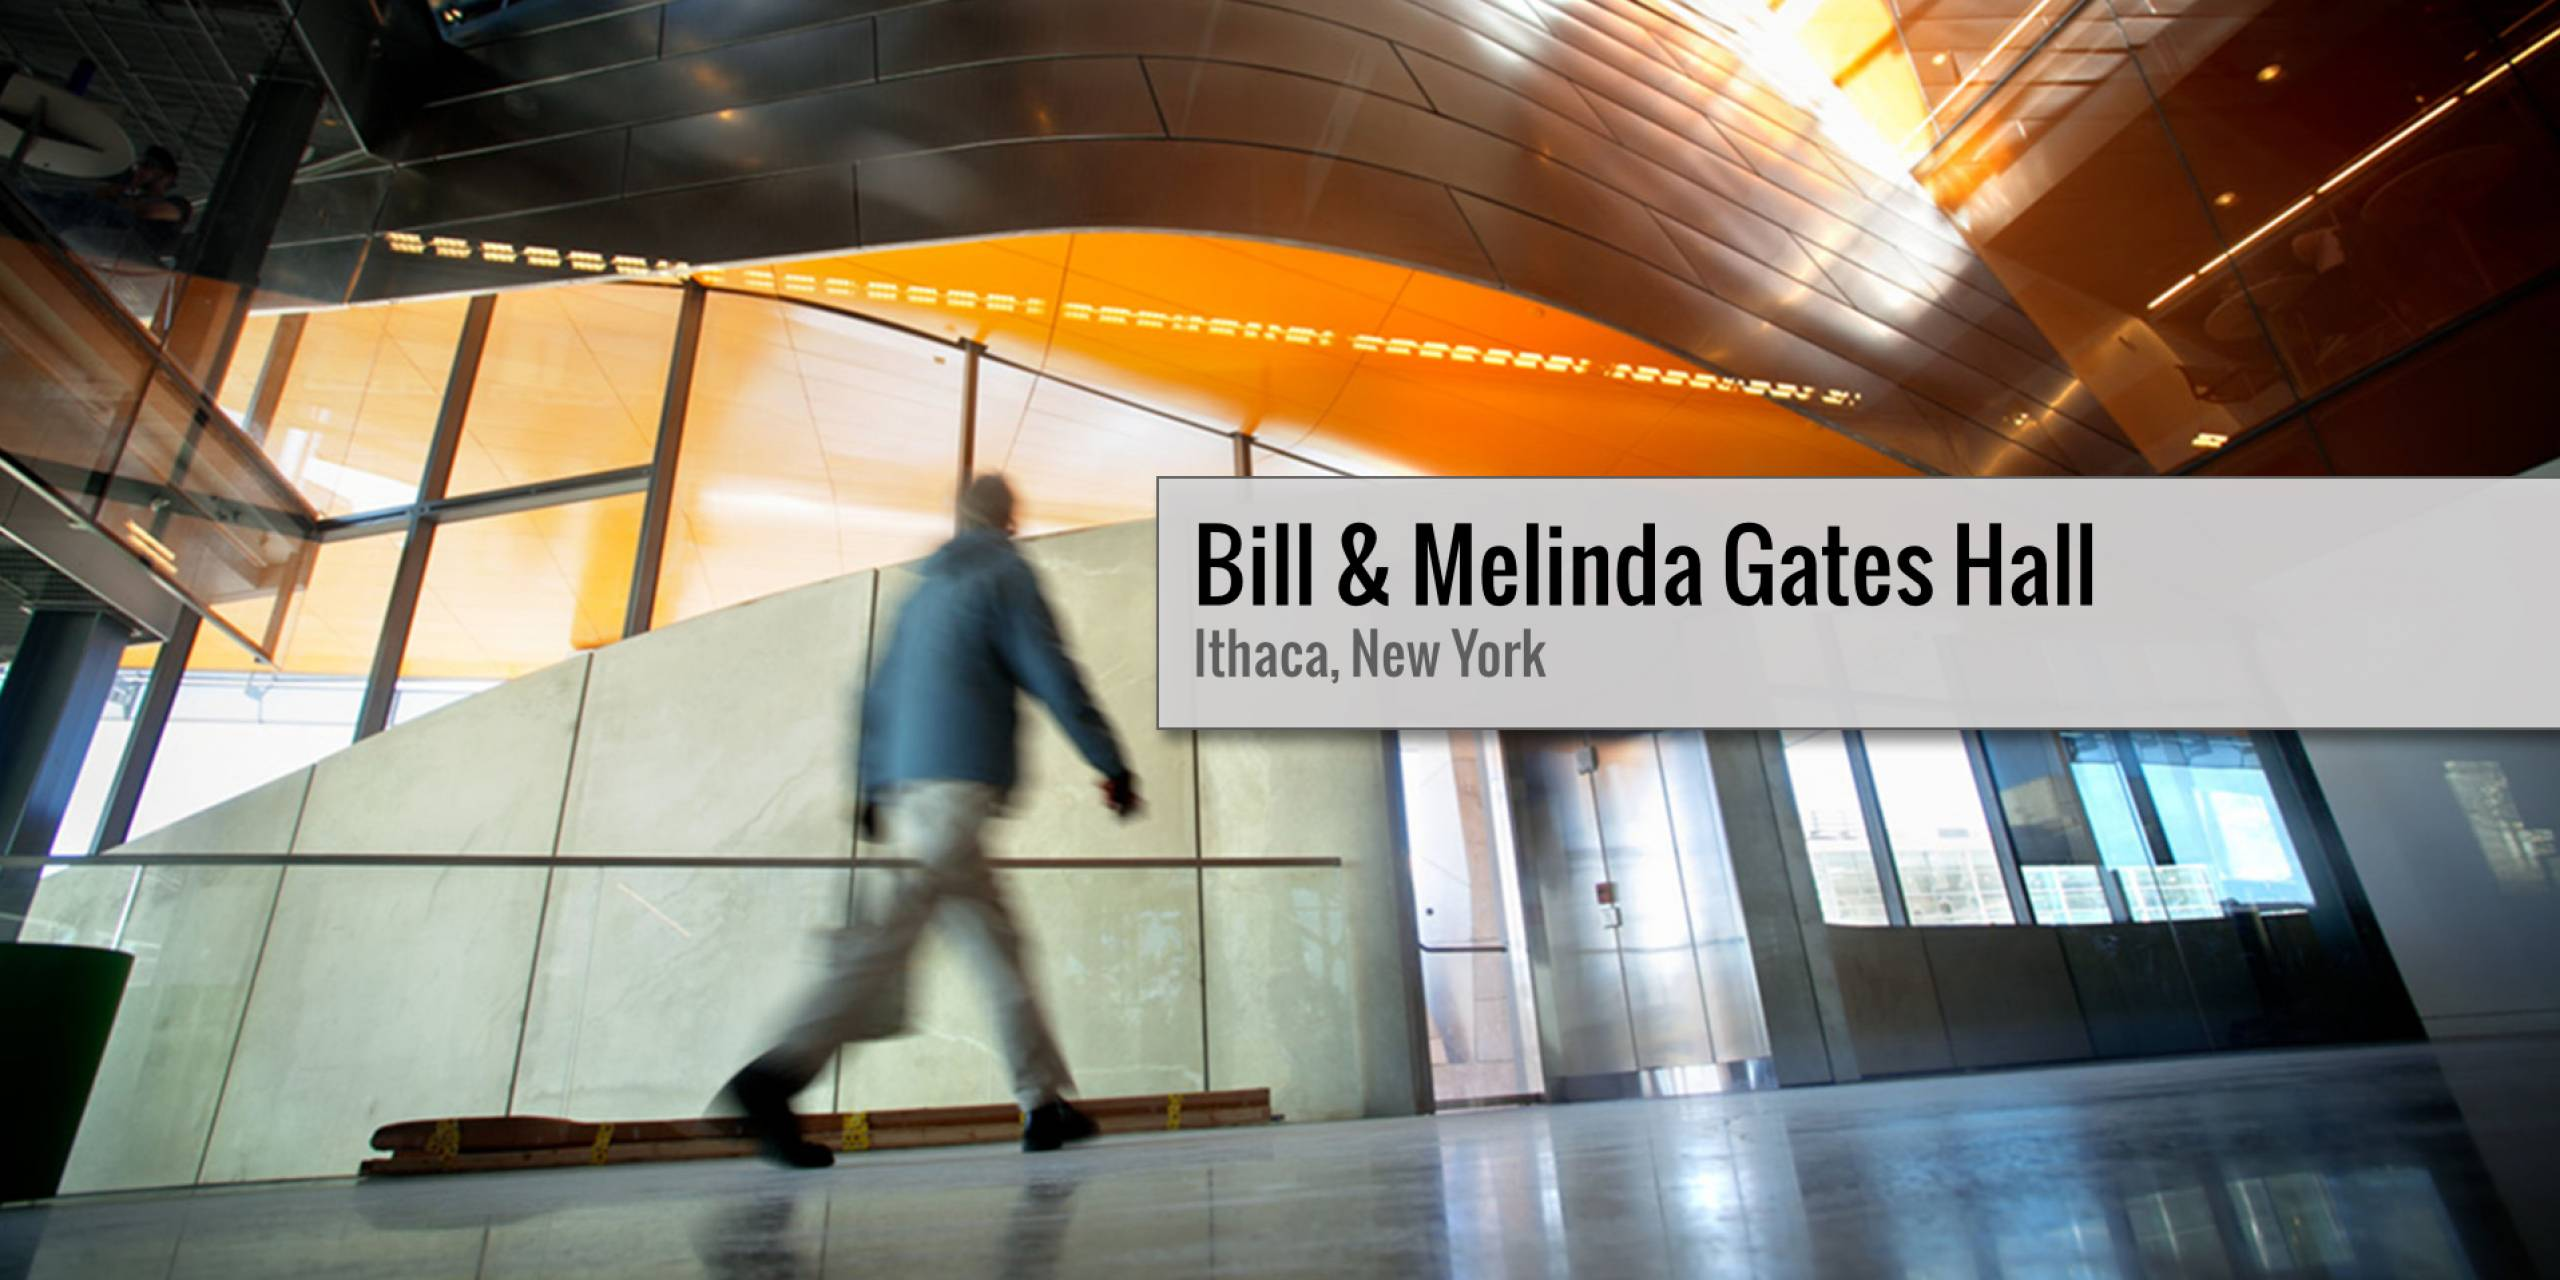 Gates Hall, Walking—Announcing the building and location